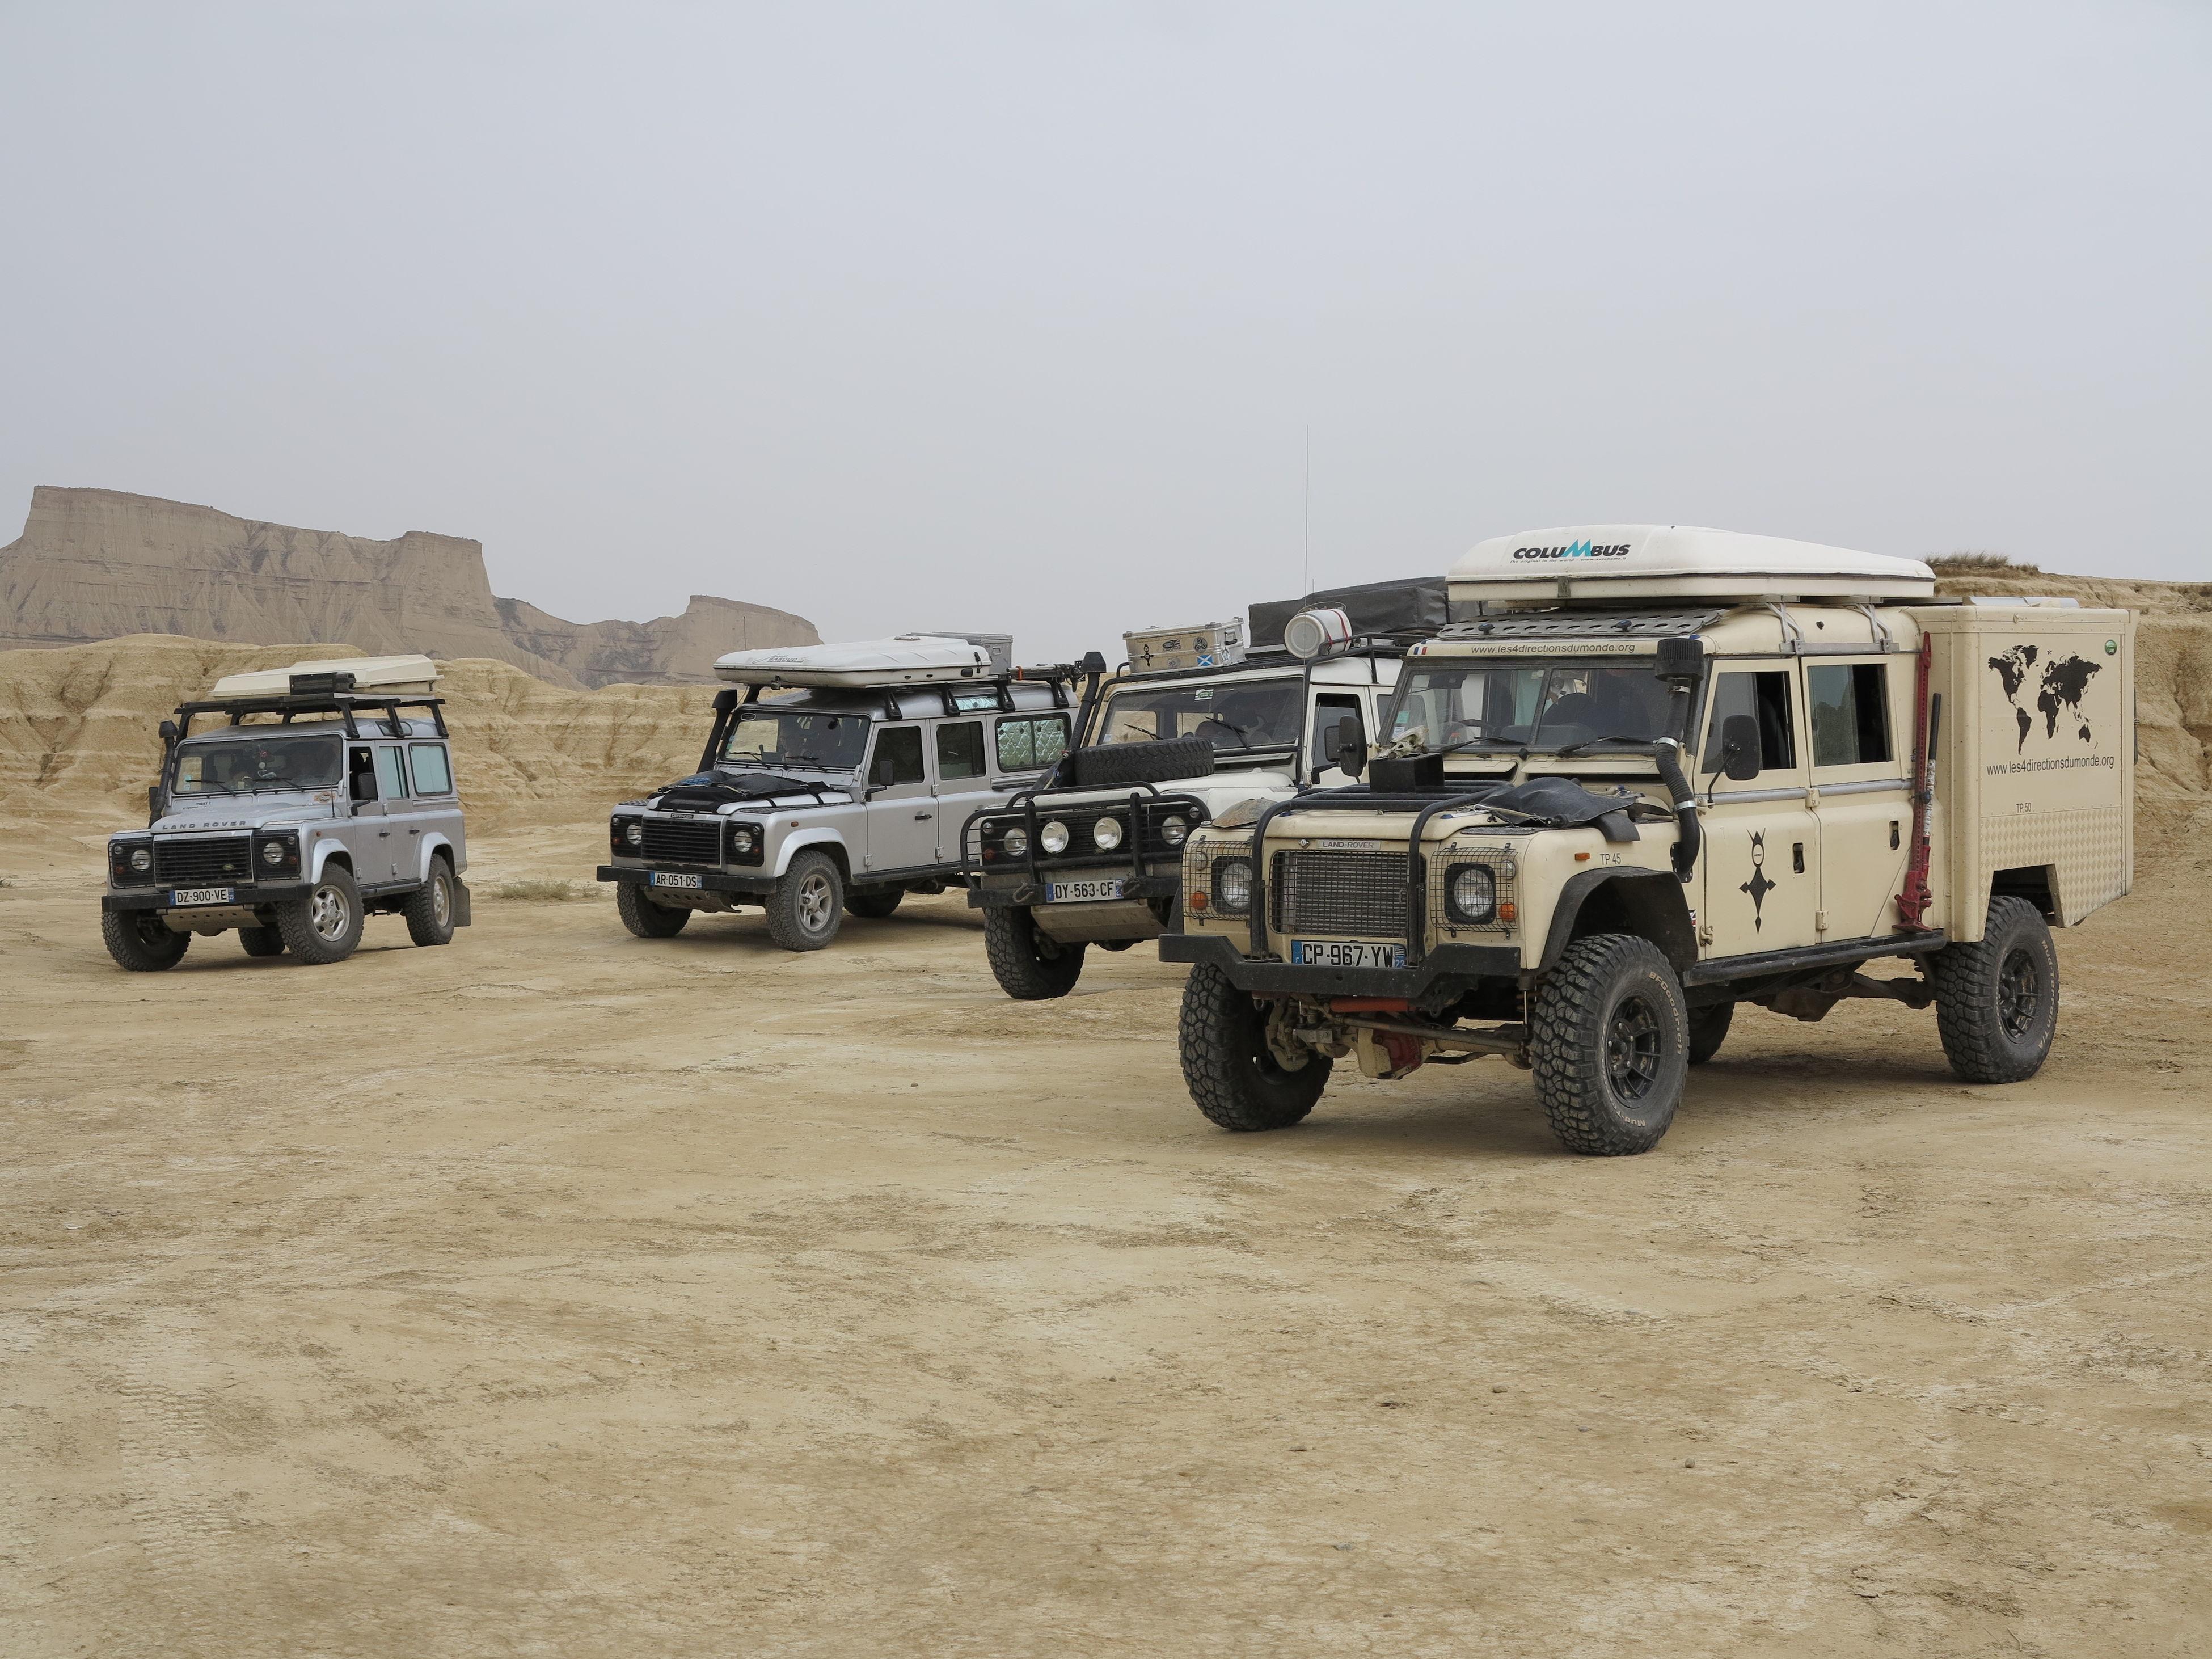 mode of transport, transportation, land vehicle, clear sky, 4x4, off-road vehicle, car, arid climate, outdoors, commercial land vehicle, day, no people, sky